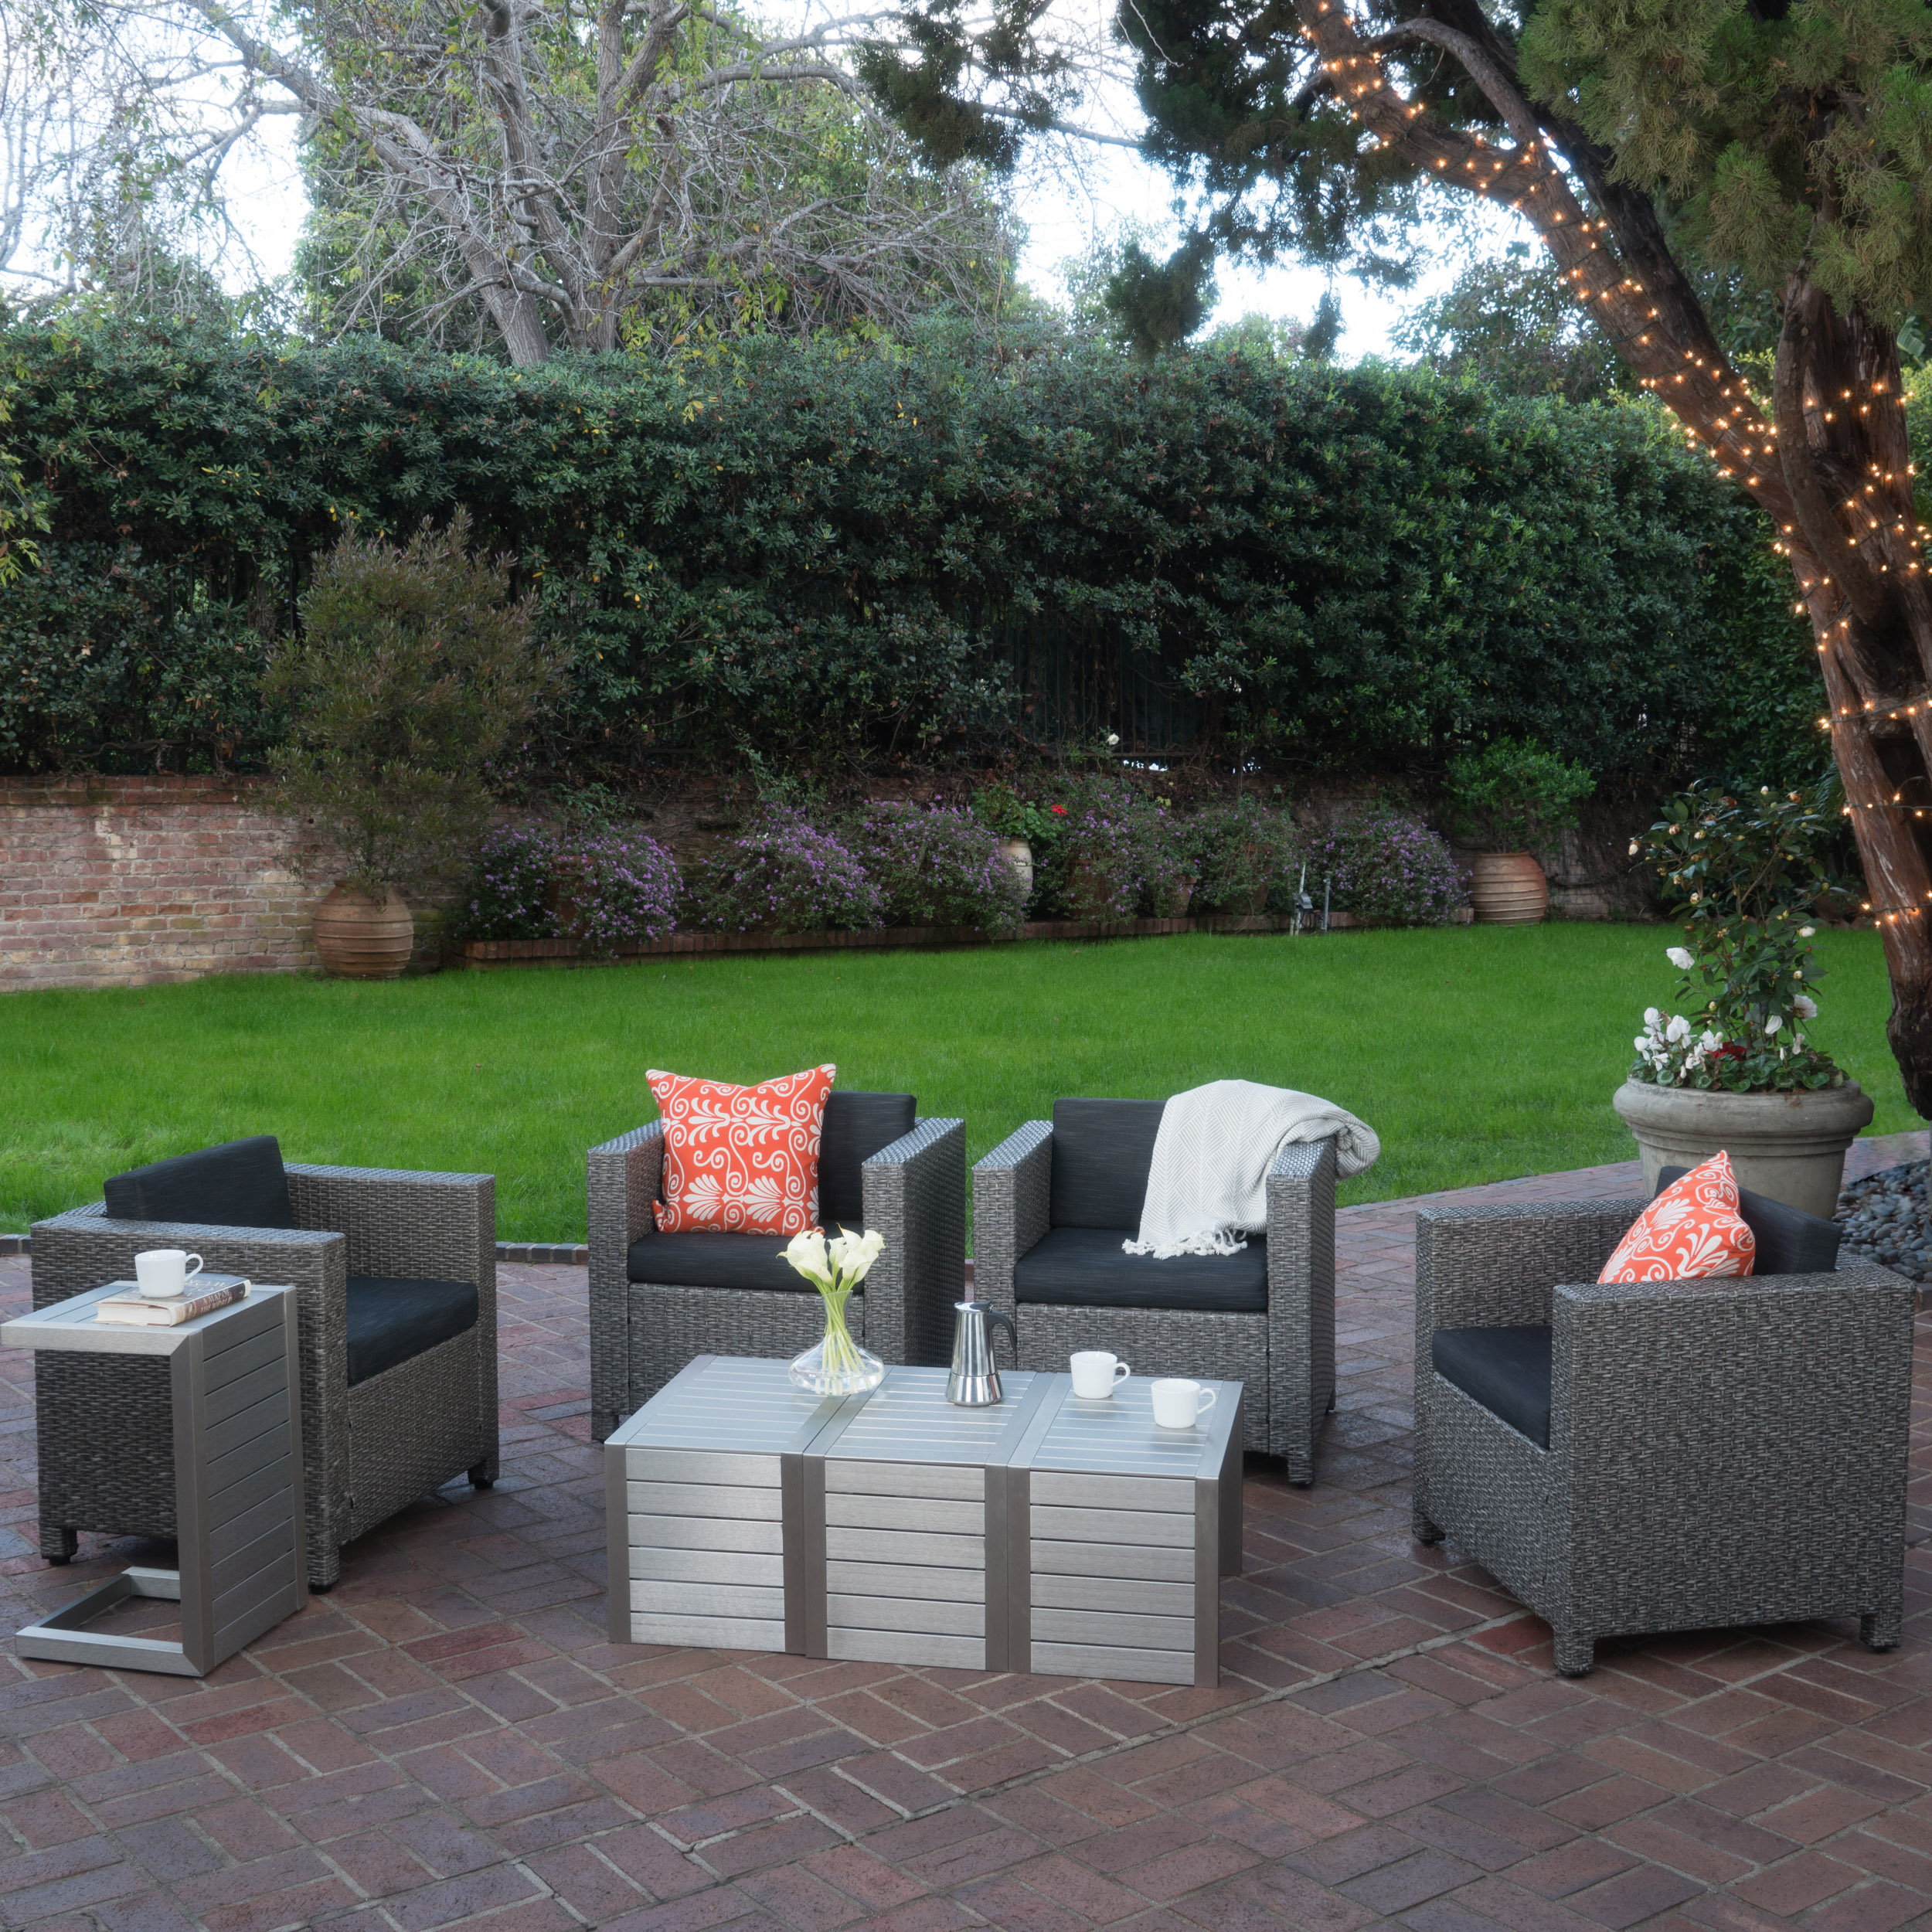 Cascada Outdoor 4 Piece Wicker Club Chairs with Cushions and C-Shaped Tables Set, Silver, Dark Grey, Mixed Black